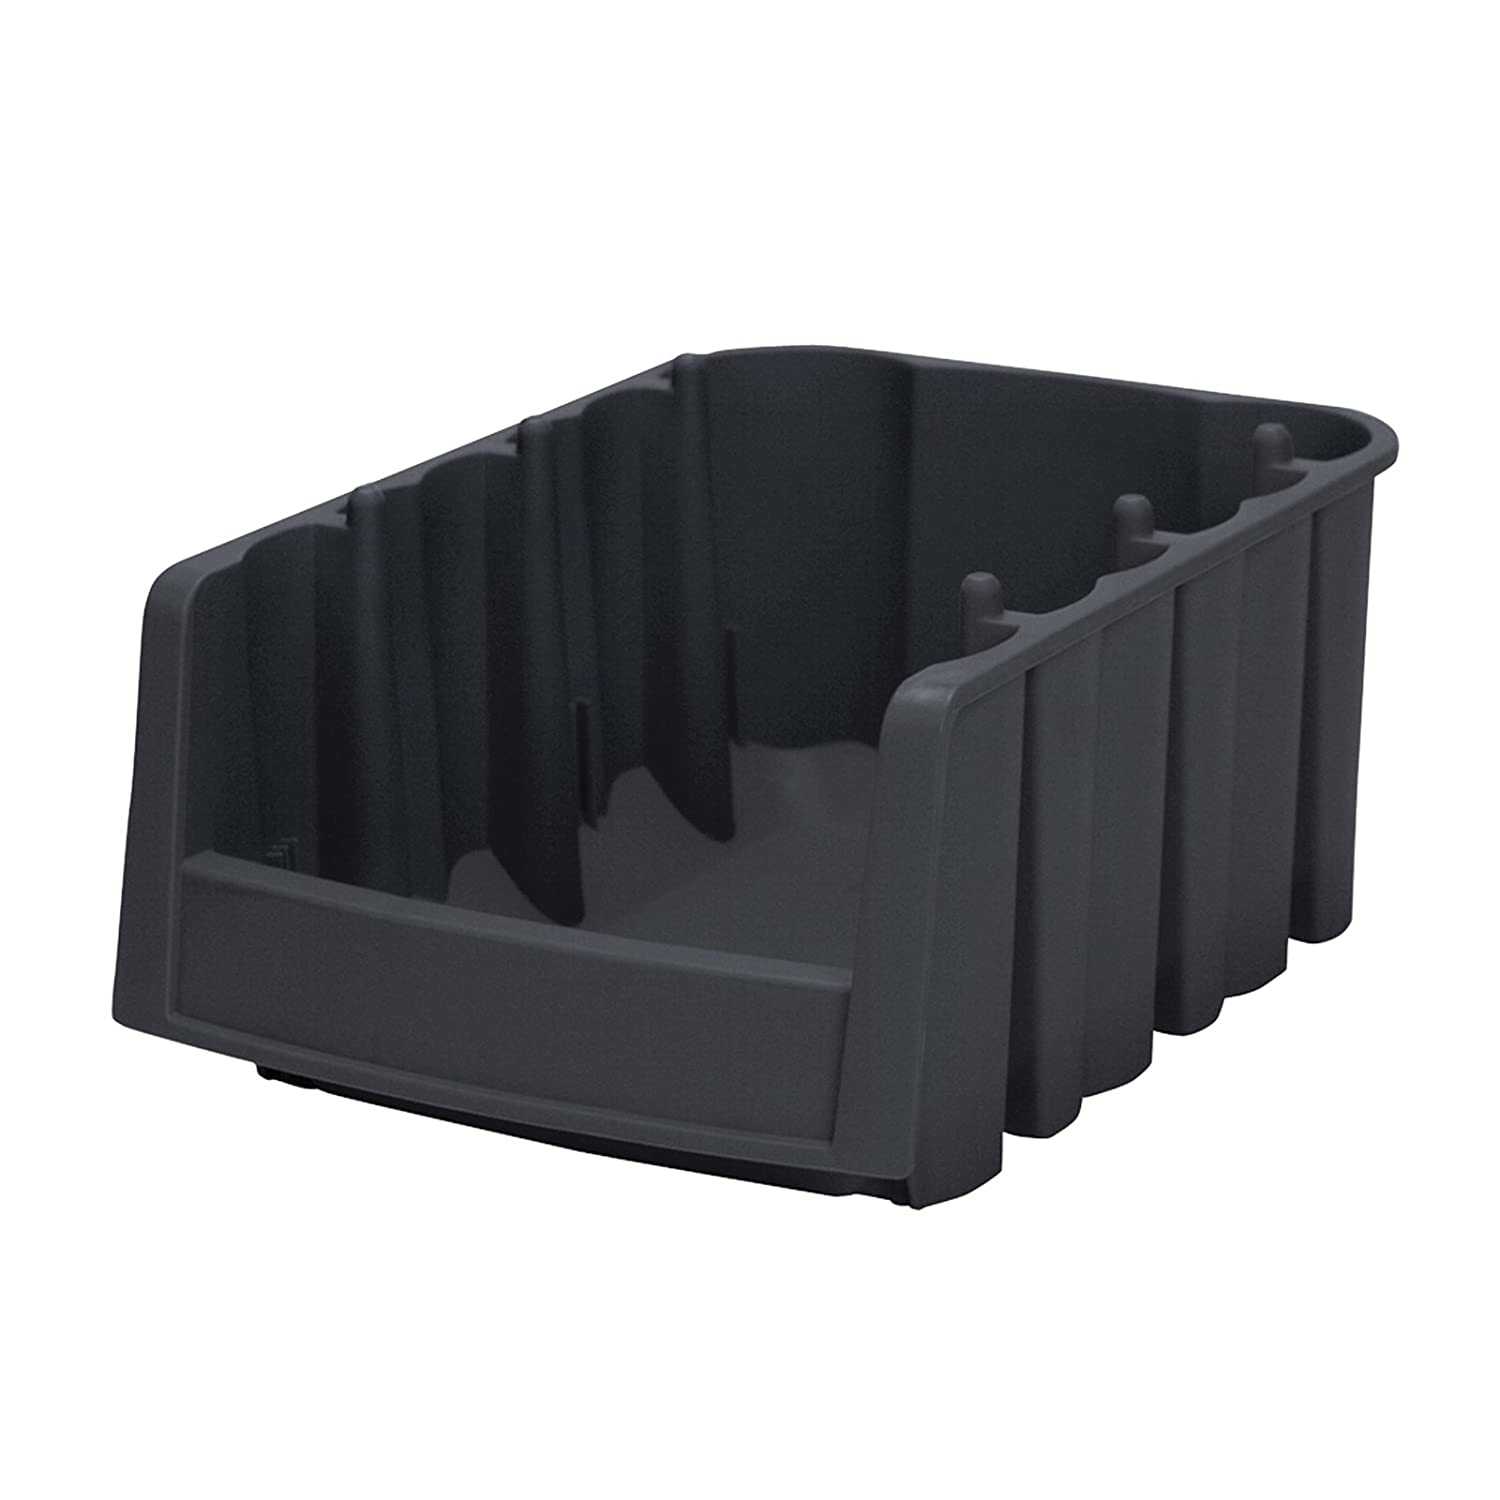 Akro-Mils 30776 Economy Stacking Nesting Plastic Storage Bin, 17-7/8-Inch Long by 6-5/8-Inch Wide by 7-Inch High, Black, Case of 10